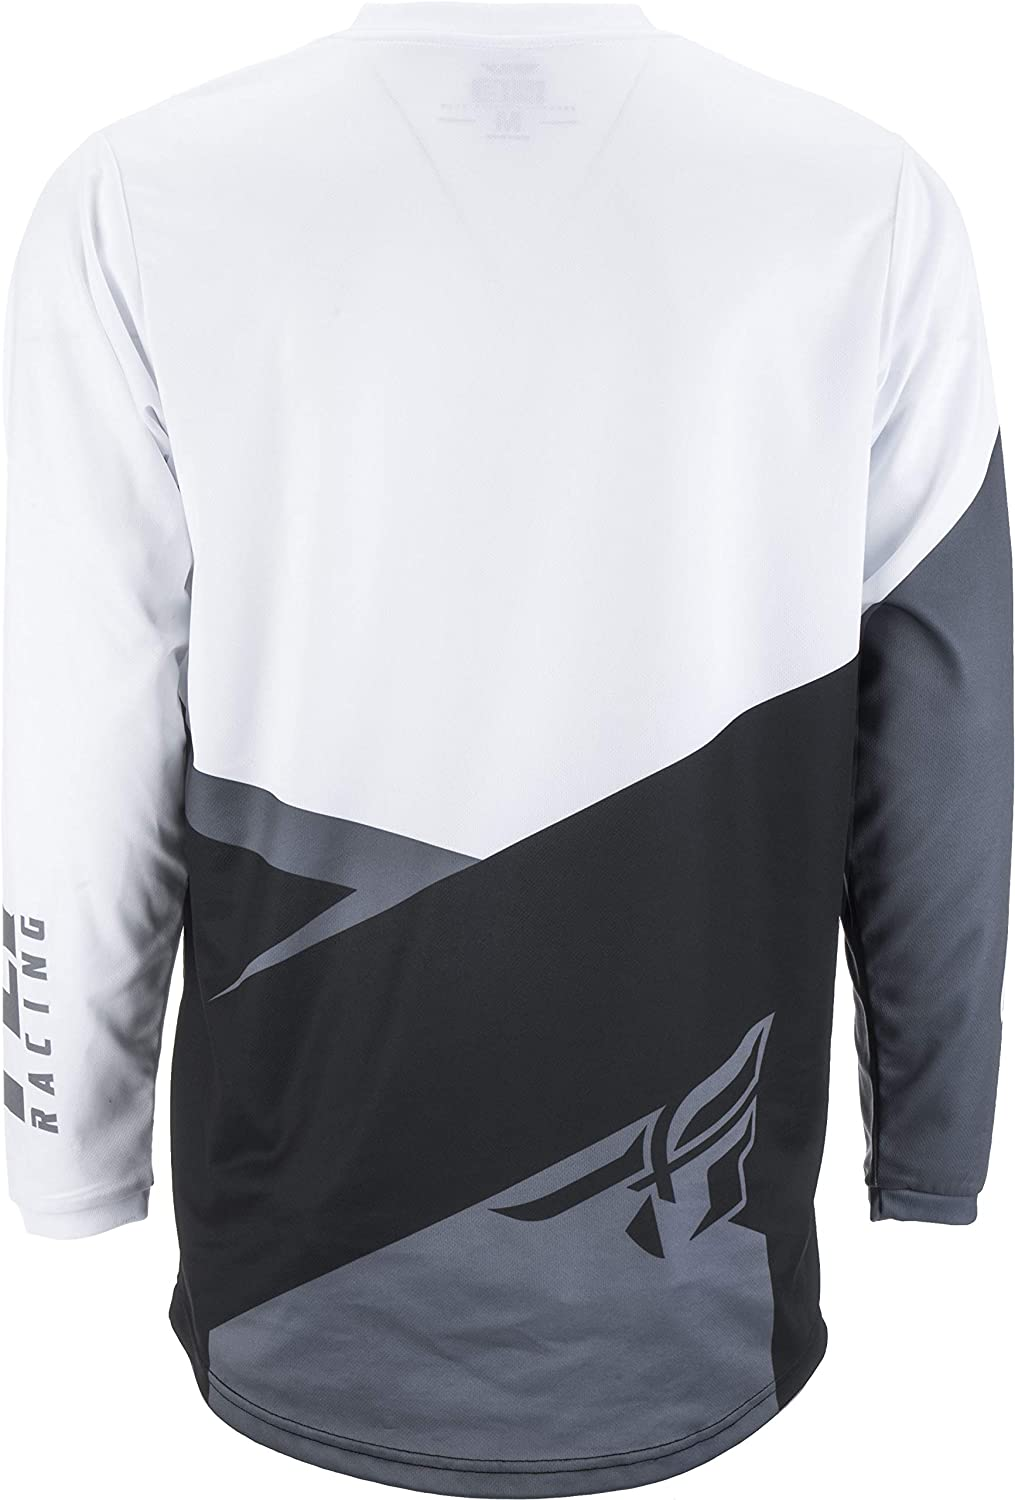 Fly Racing 2019 F-16 Jersey and Pants Combo Black//White//Gray Adult Racing Suit Gear Set Small//28